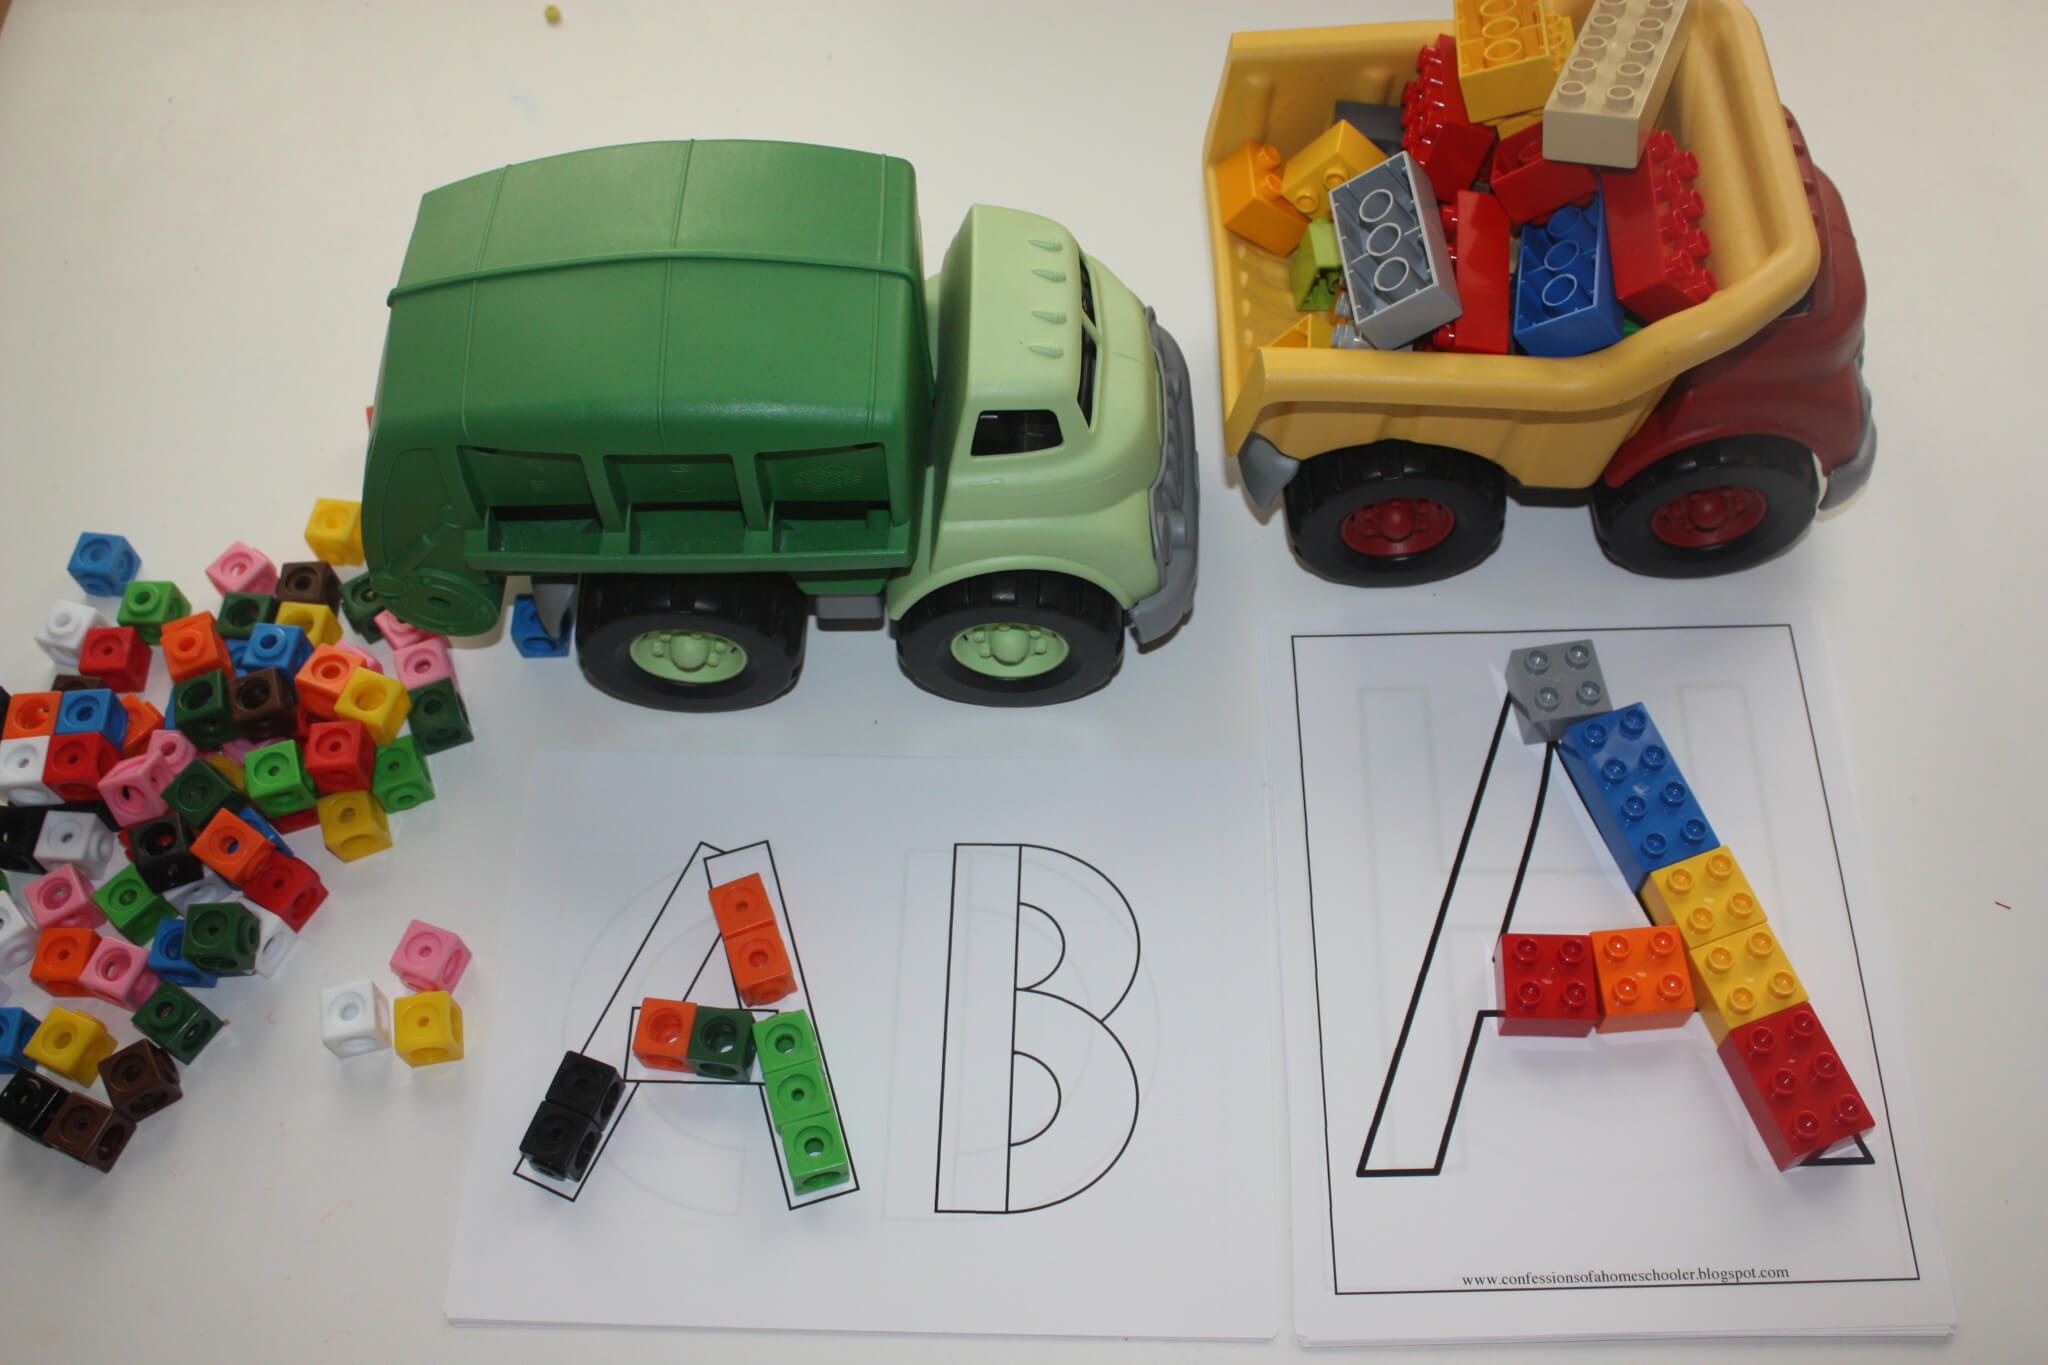 Alphabet Learning Through Play